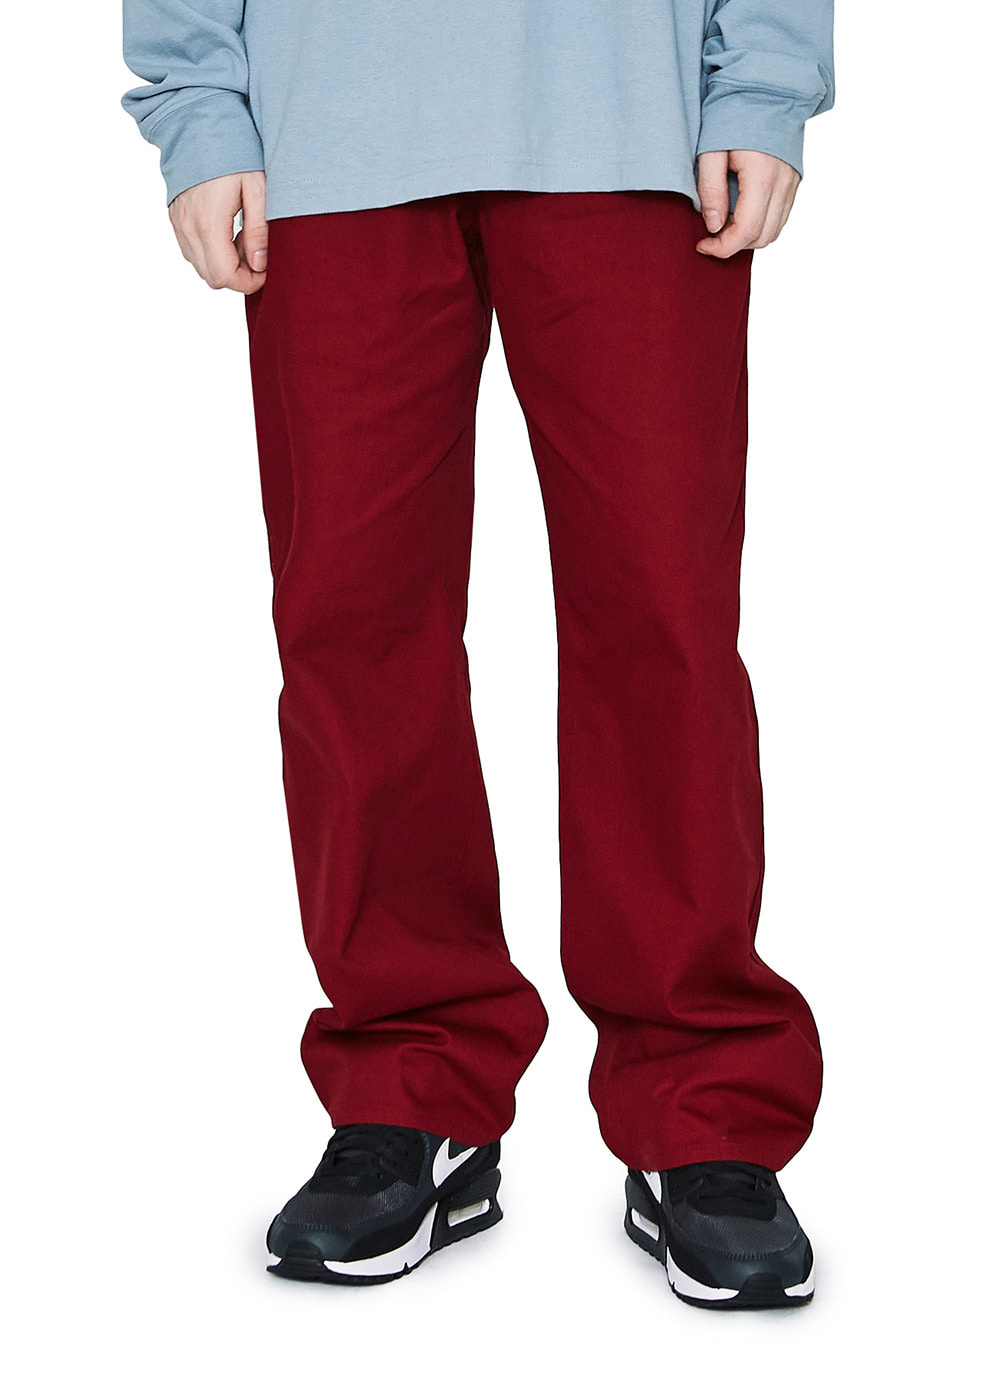 LMC BASIC FN CHINO PANTS burgundy